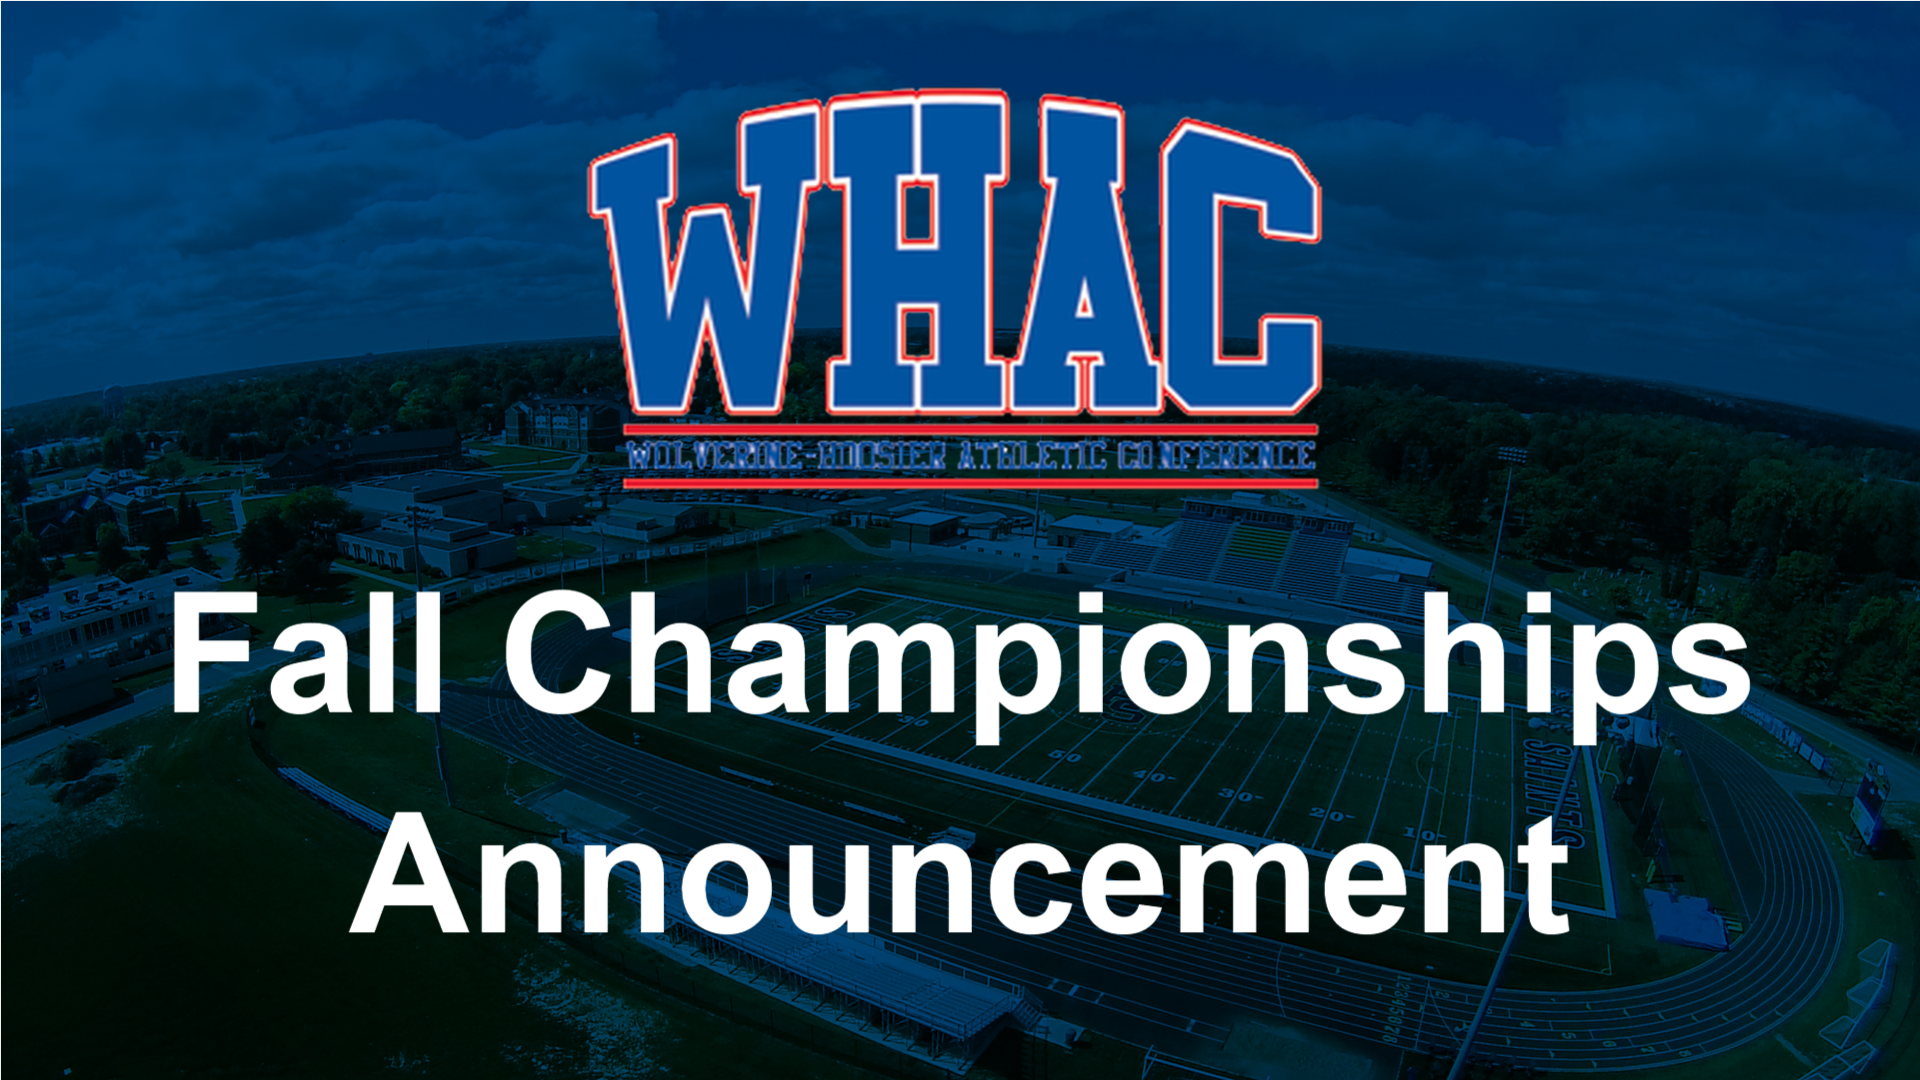 WHAC Presidents Postpone Fall Championships to Spring 2021